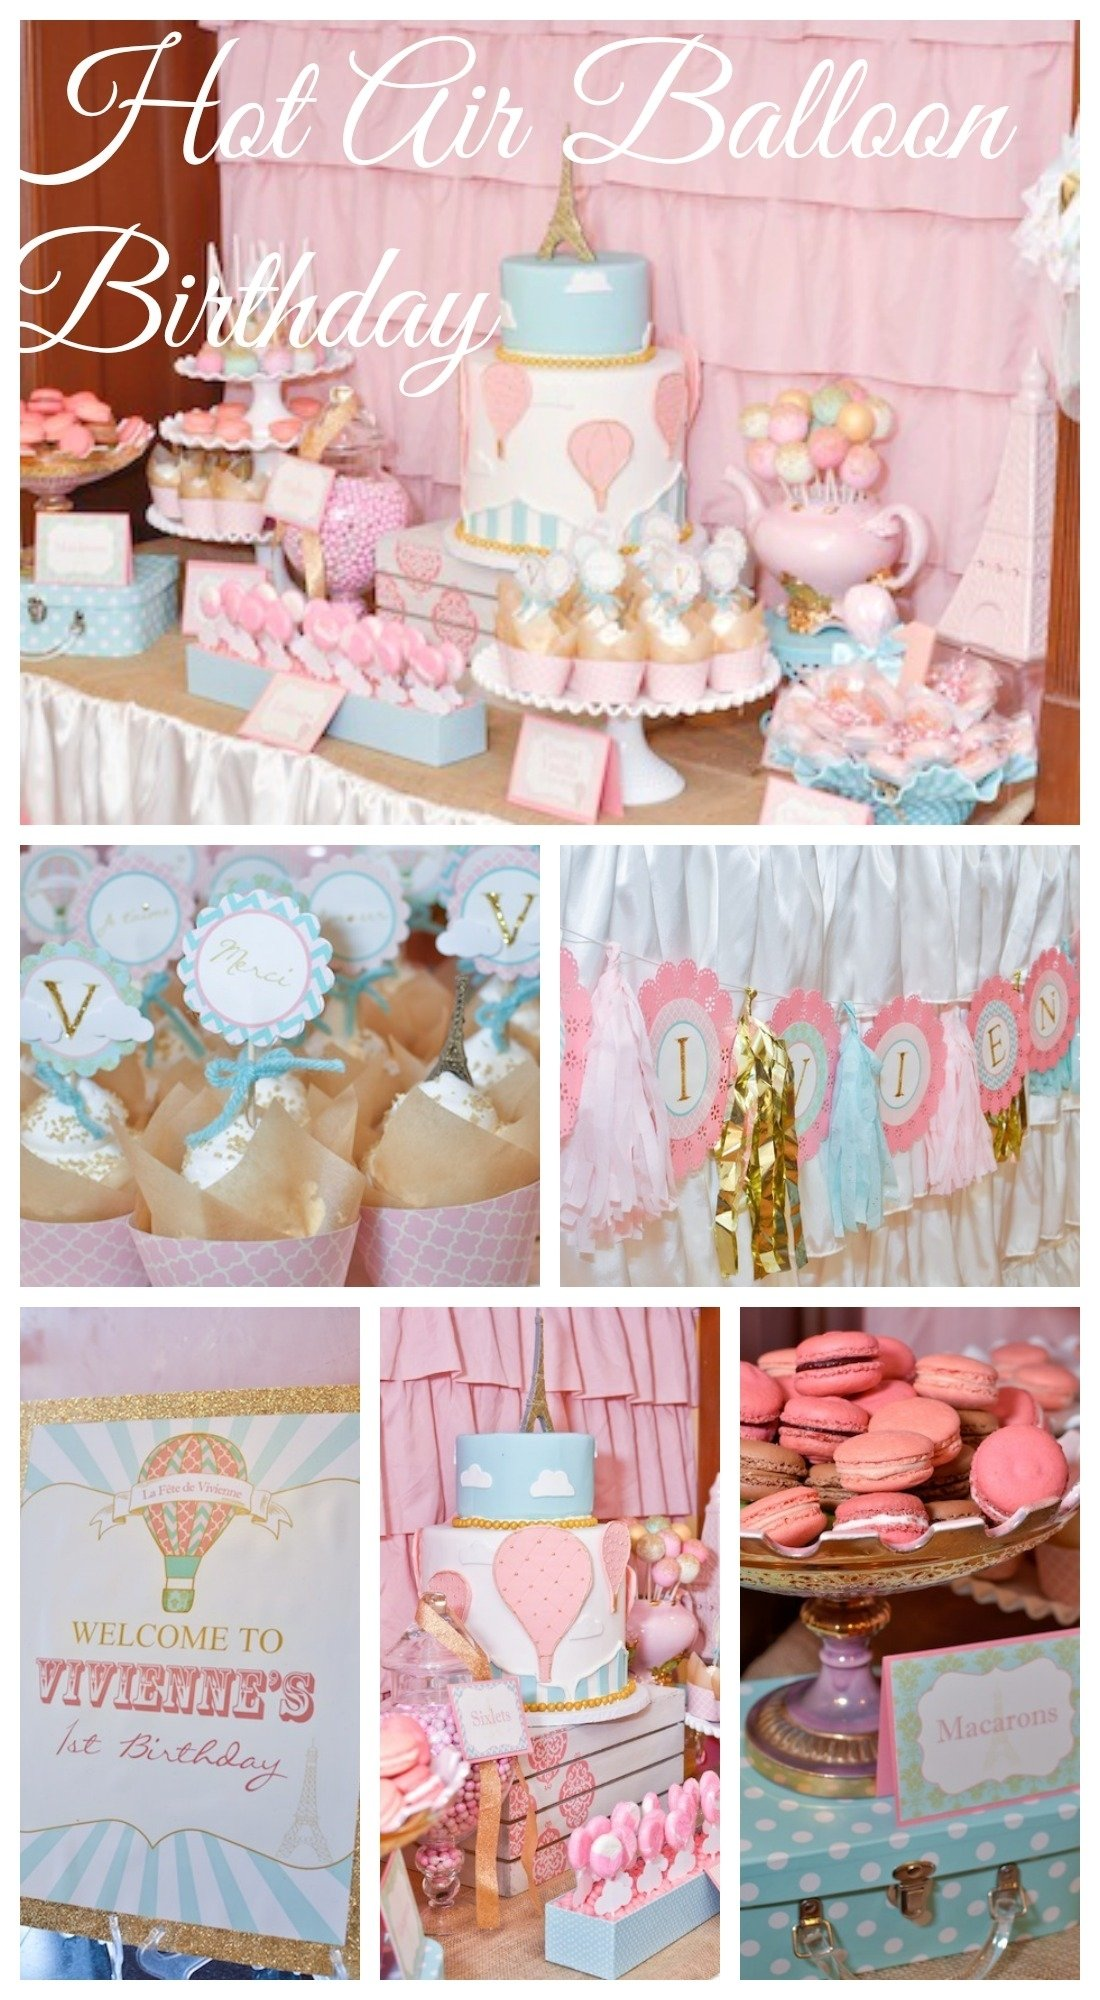 10 Cute Girl Birthday Party Ideas Pinterest hot air balloon girl 1st birthday see more party ideas at 1